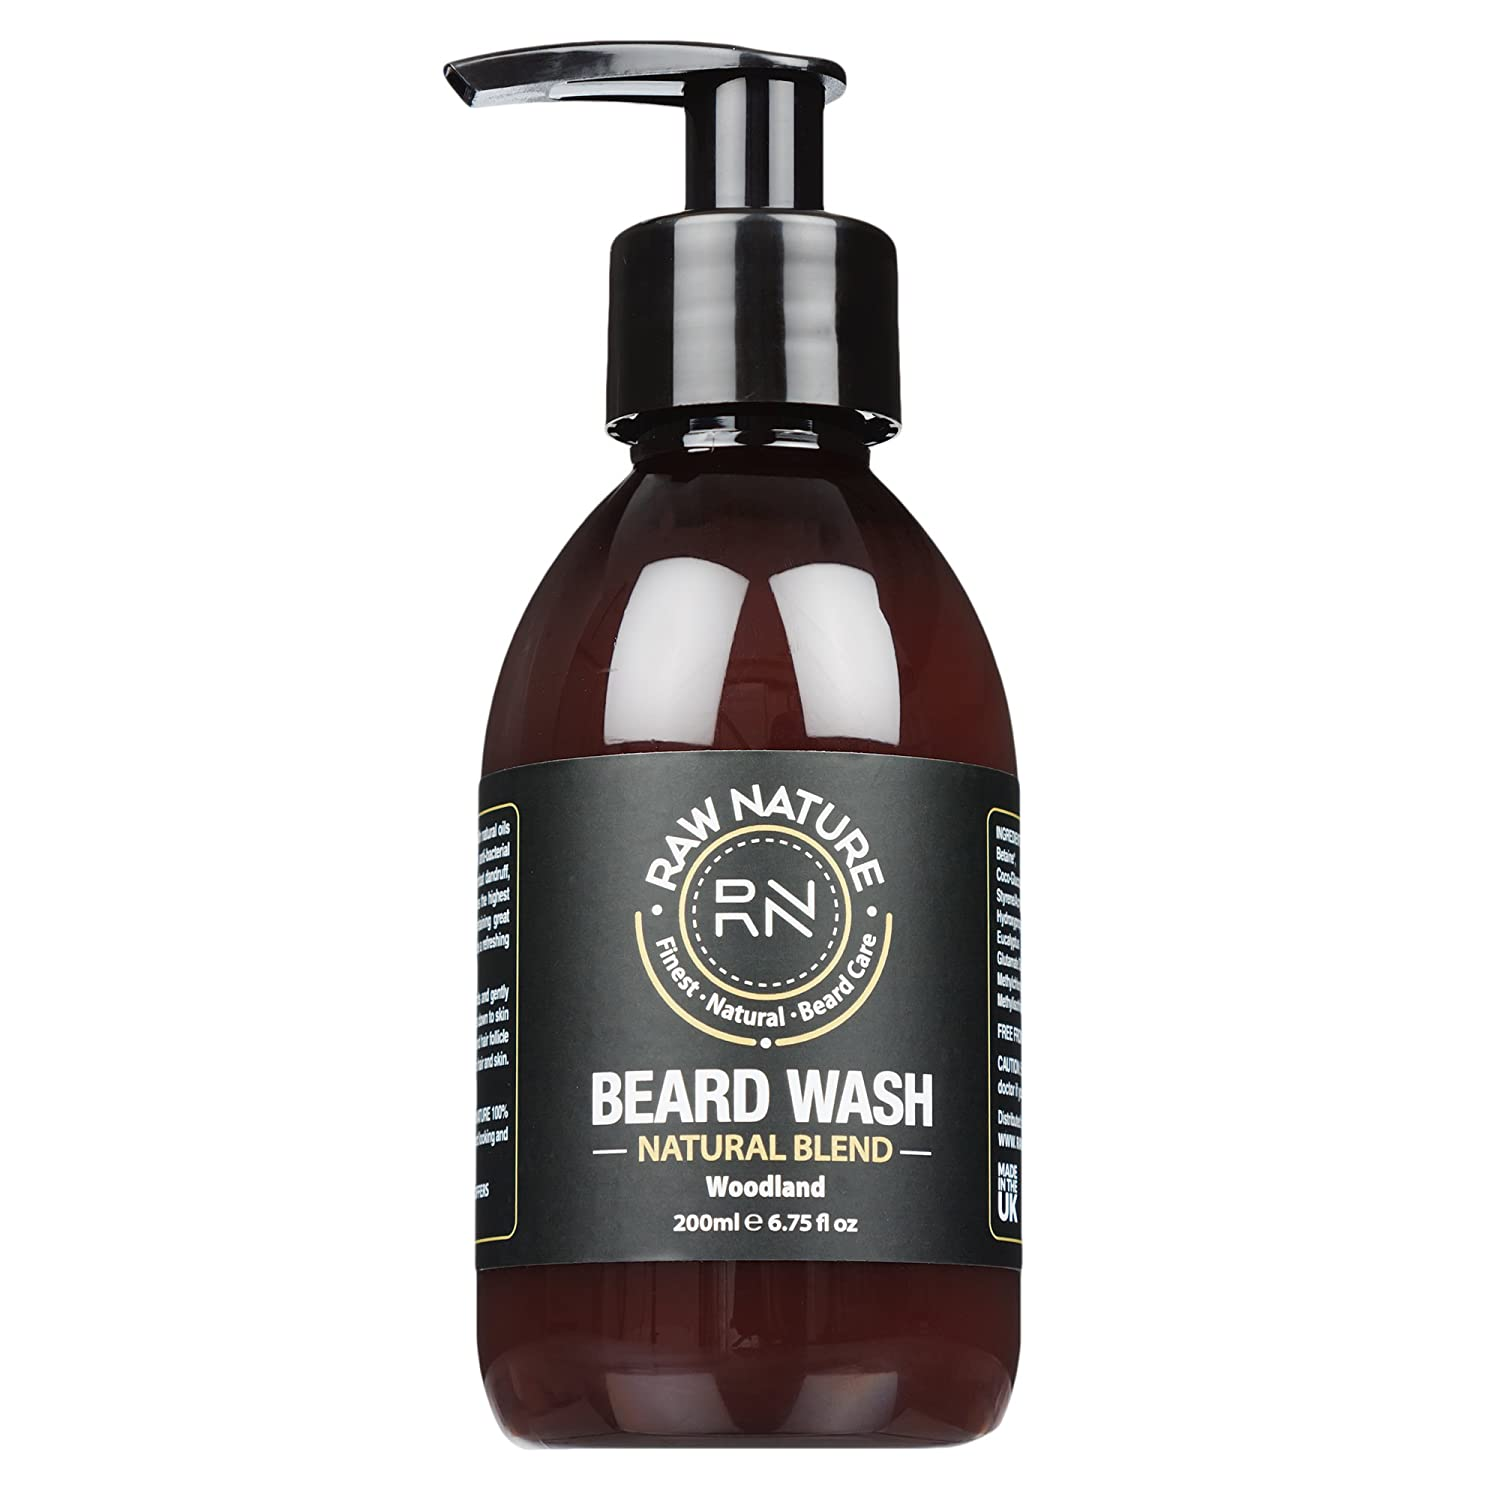 RAWNATURE® Beard Shampoo – Premium Luxury Grade - XL 200ml Beard Wash, 98% Naturally Derived - blended in the UK for Healthy Growth, Conditioner and Nourishment of Beard and Skin - Perfect Gift